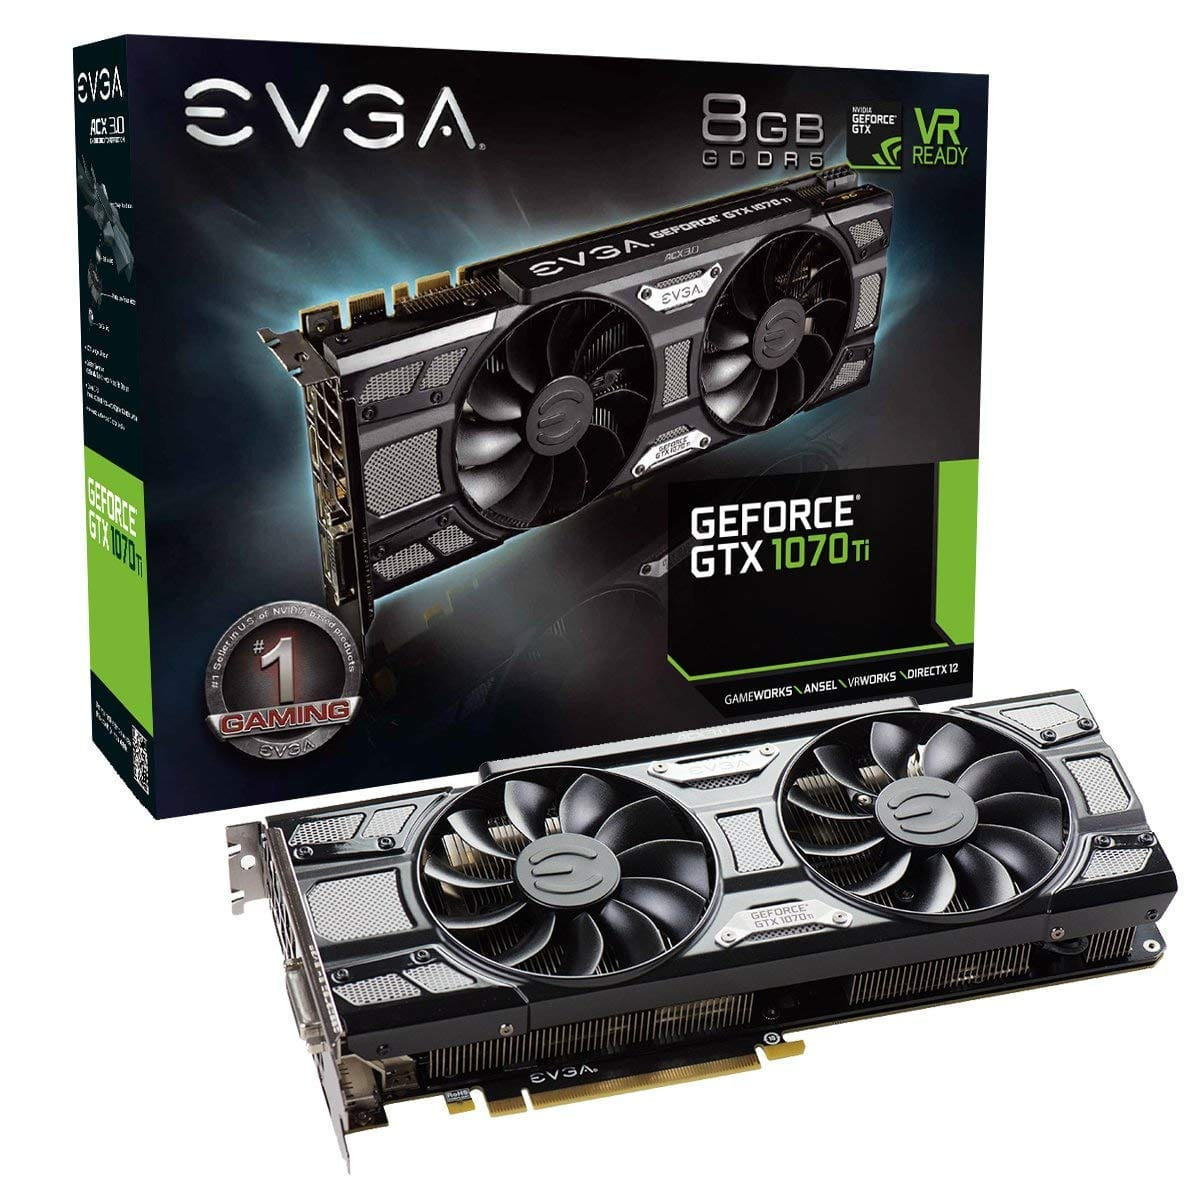 EVGA GeForce GTX 1070 Ti ACX 3.0 Black Edition, 8GB GDDR5 ($100 off) $449.99